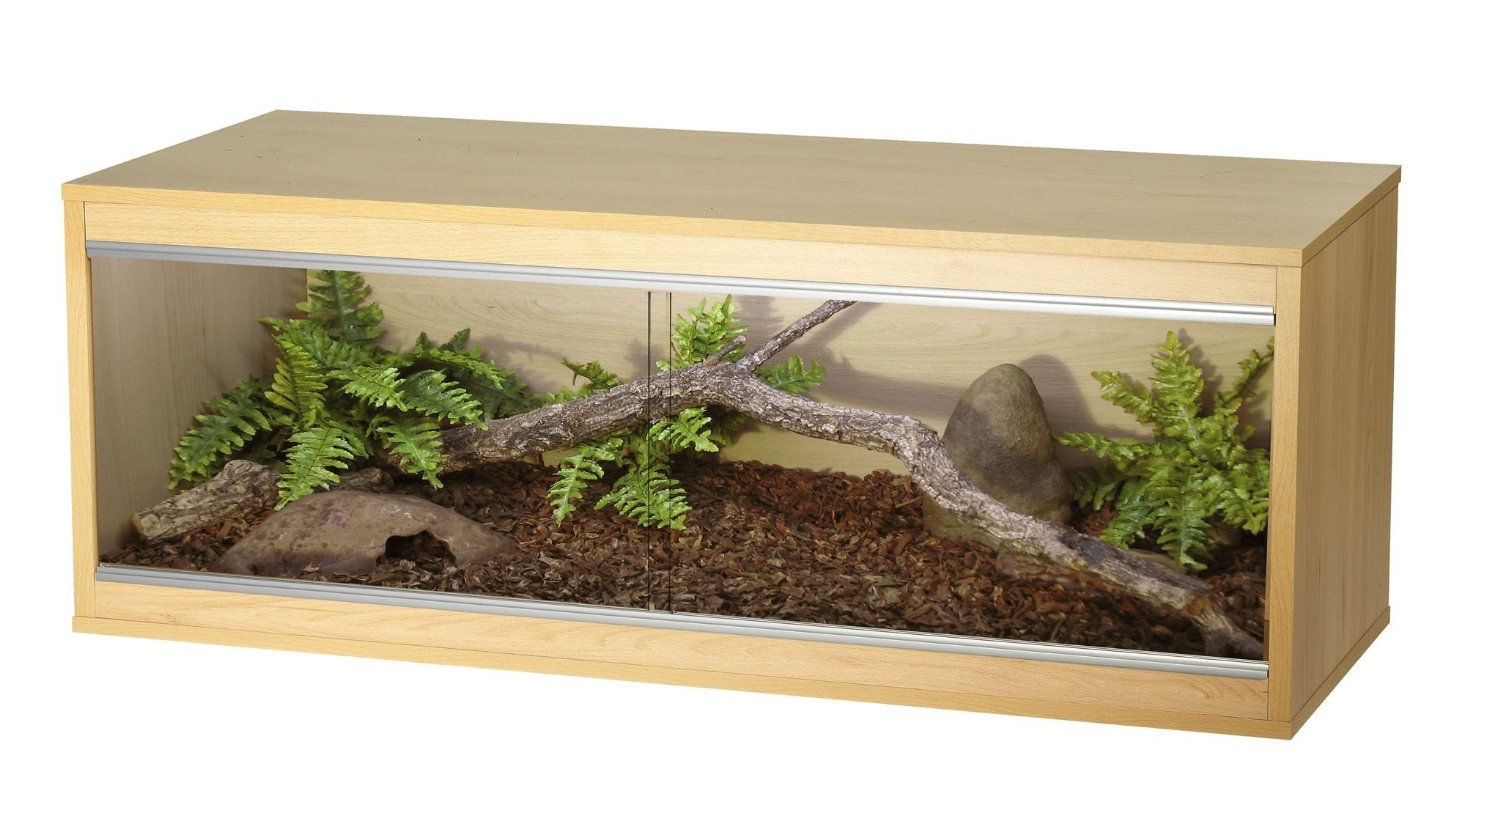 Cheap Vivariums Best Vivariums Under 100 Vivarium World